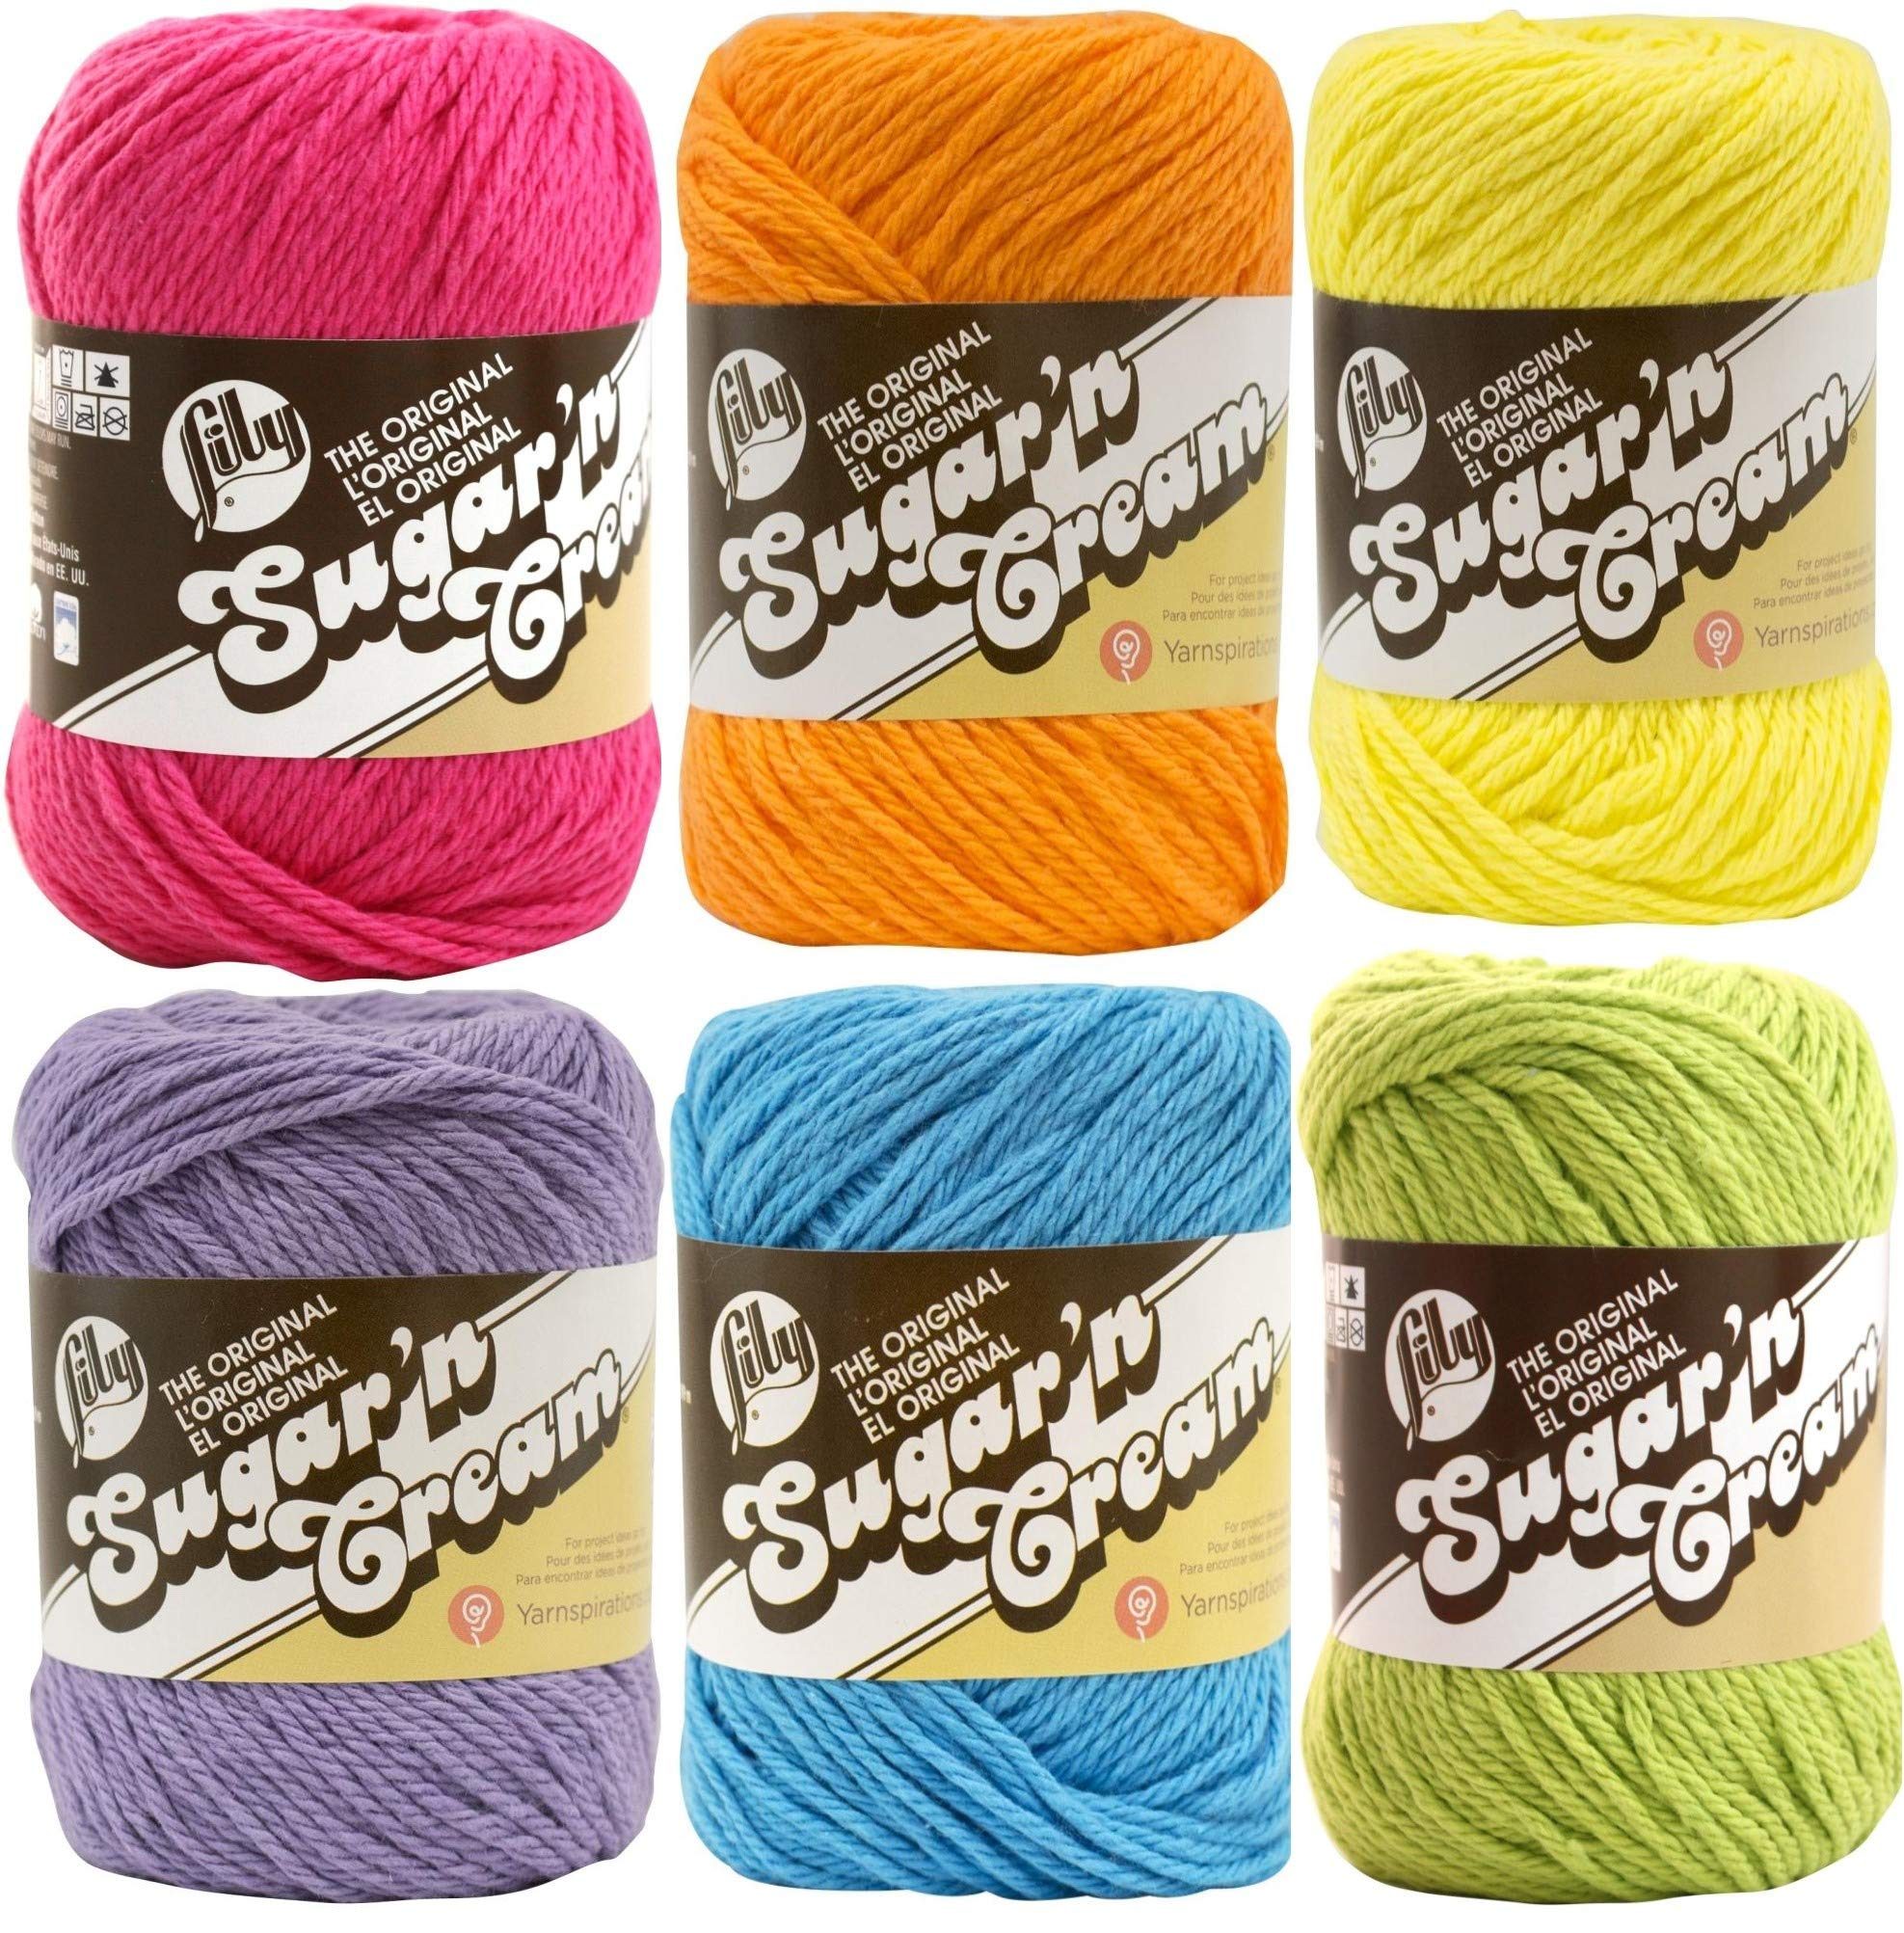 Lily Sugar n' Cream Solid Variety Assortment 6 Pack Bundle 100 Percent Cotton Medium 4 Worsted (Multicolor) by Lily (Image #1)